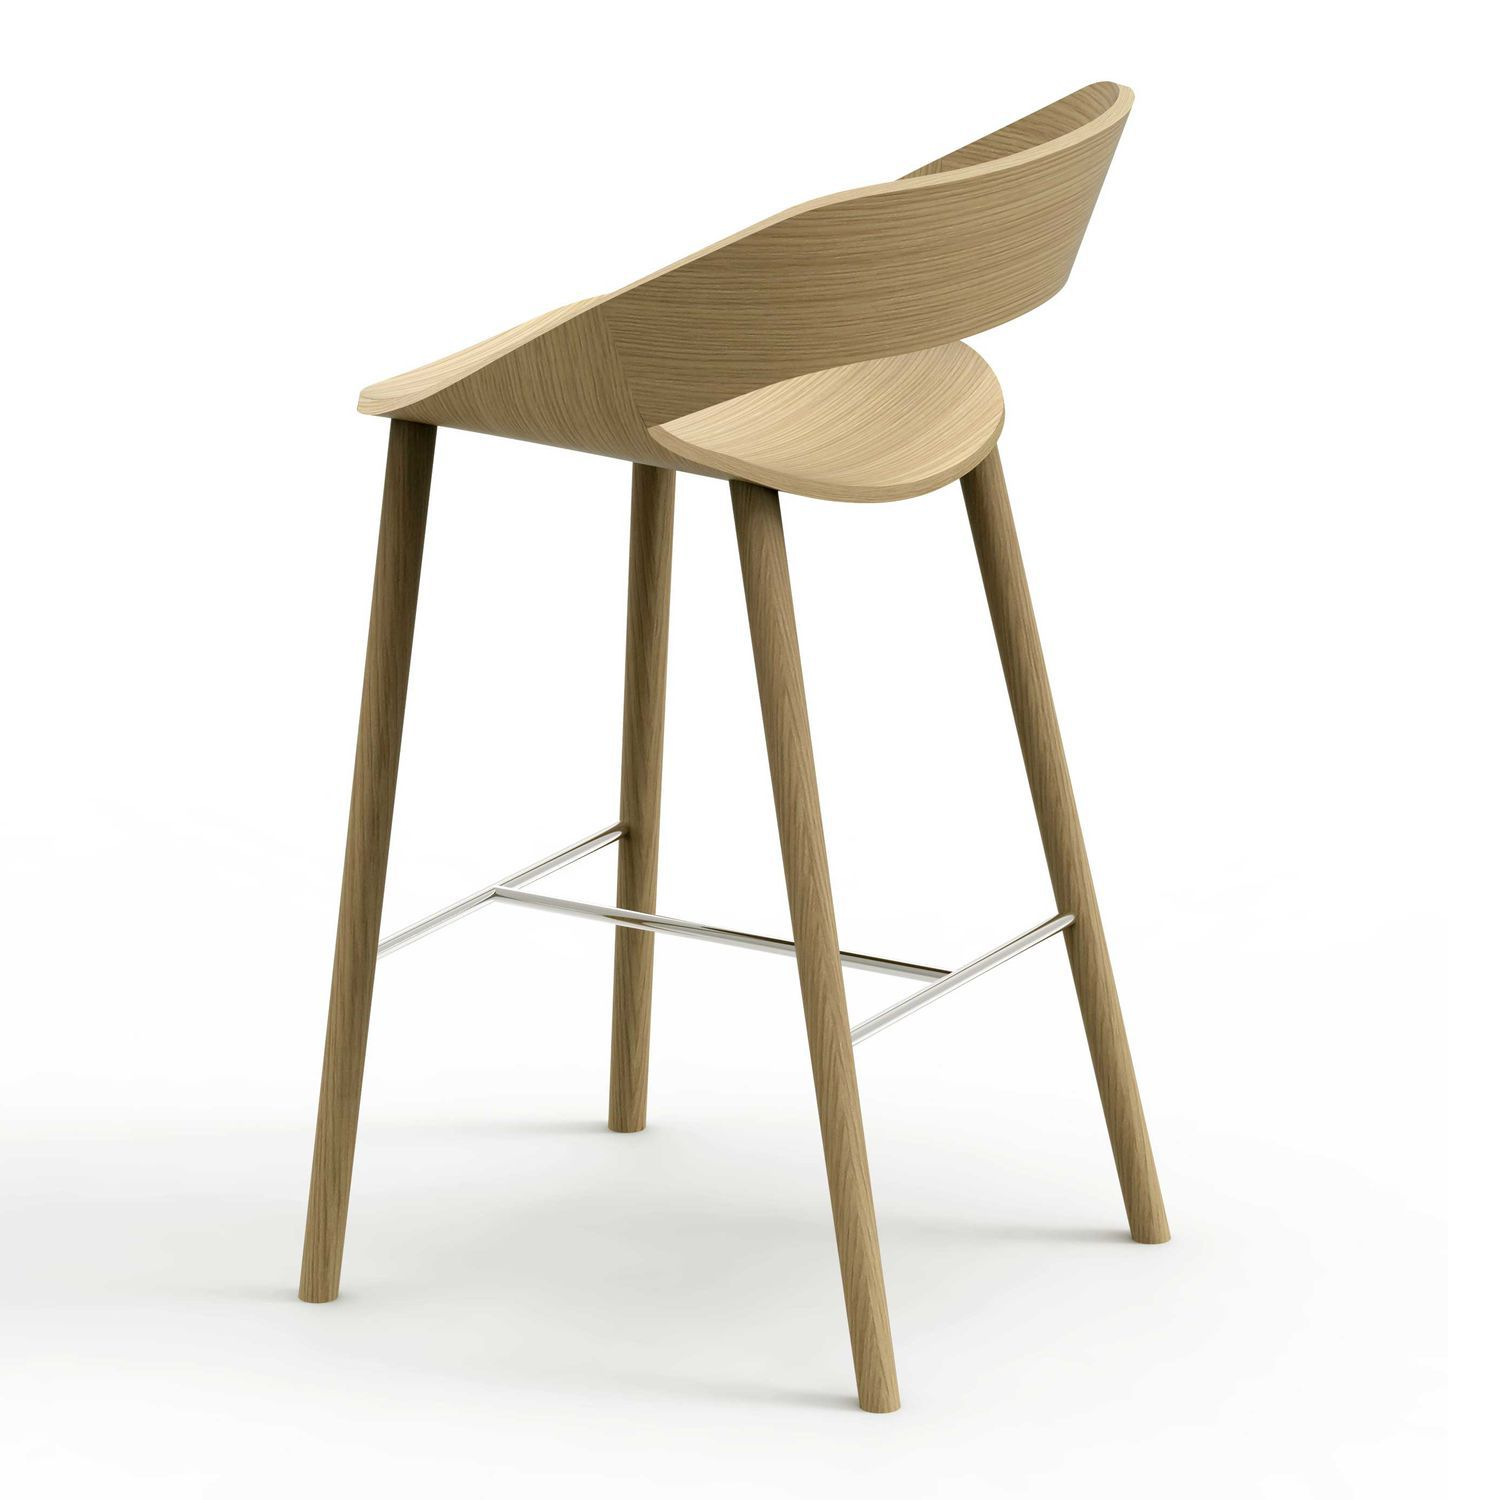 Contemporary bar stool / wooden / steel / contract - KABIRA WOOD ST by Kensaku Oshiro  sc 1 st  ArchiExpo & Contemporary bar stool / wooden / steel / contract - KABIRA WOOD ... islam-shia.org